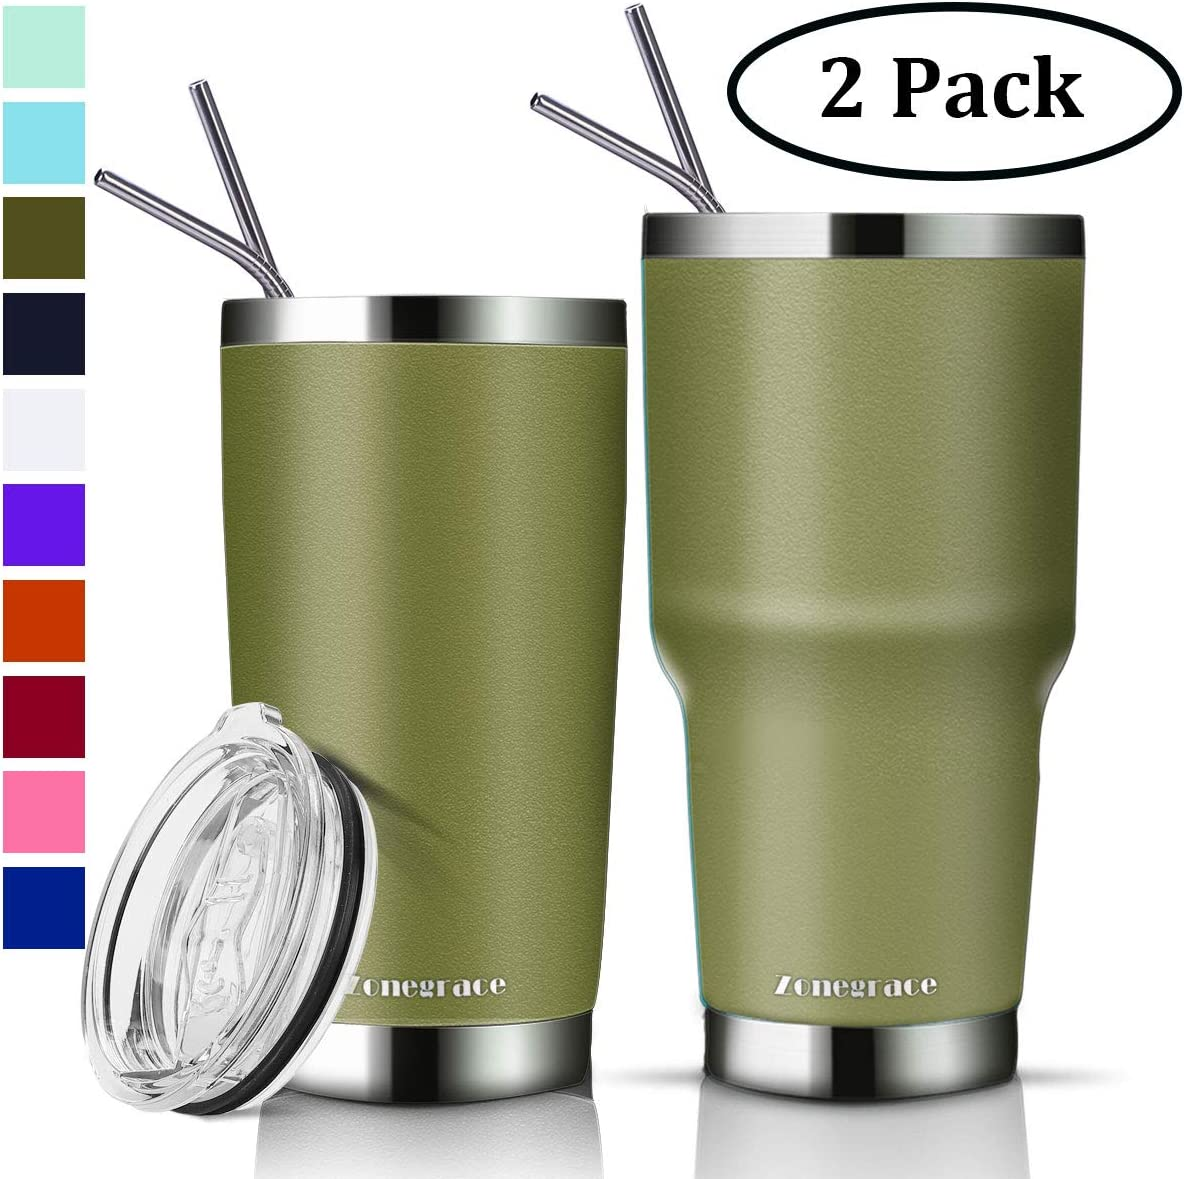 Zonegrace 2 Pack Olive Green 20 oz and 30 oz Classic Tumbler with Straw Lid Travel Mug Gift Vacuum Insulated Coffee Beer Pint Cup 18/8 Stainless Steel Water Bottle